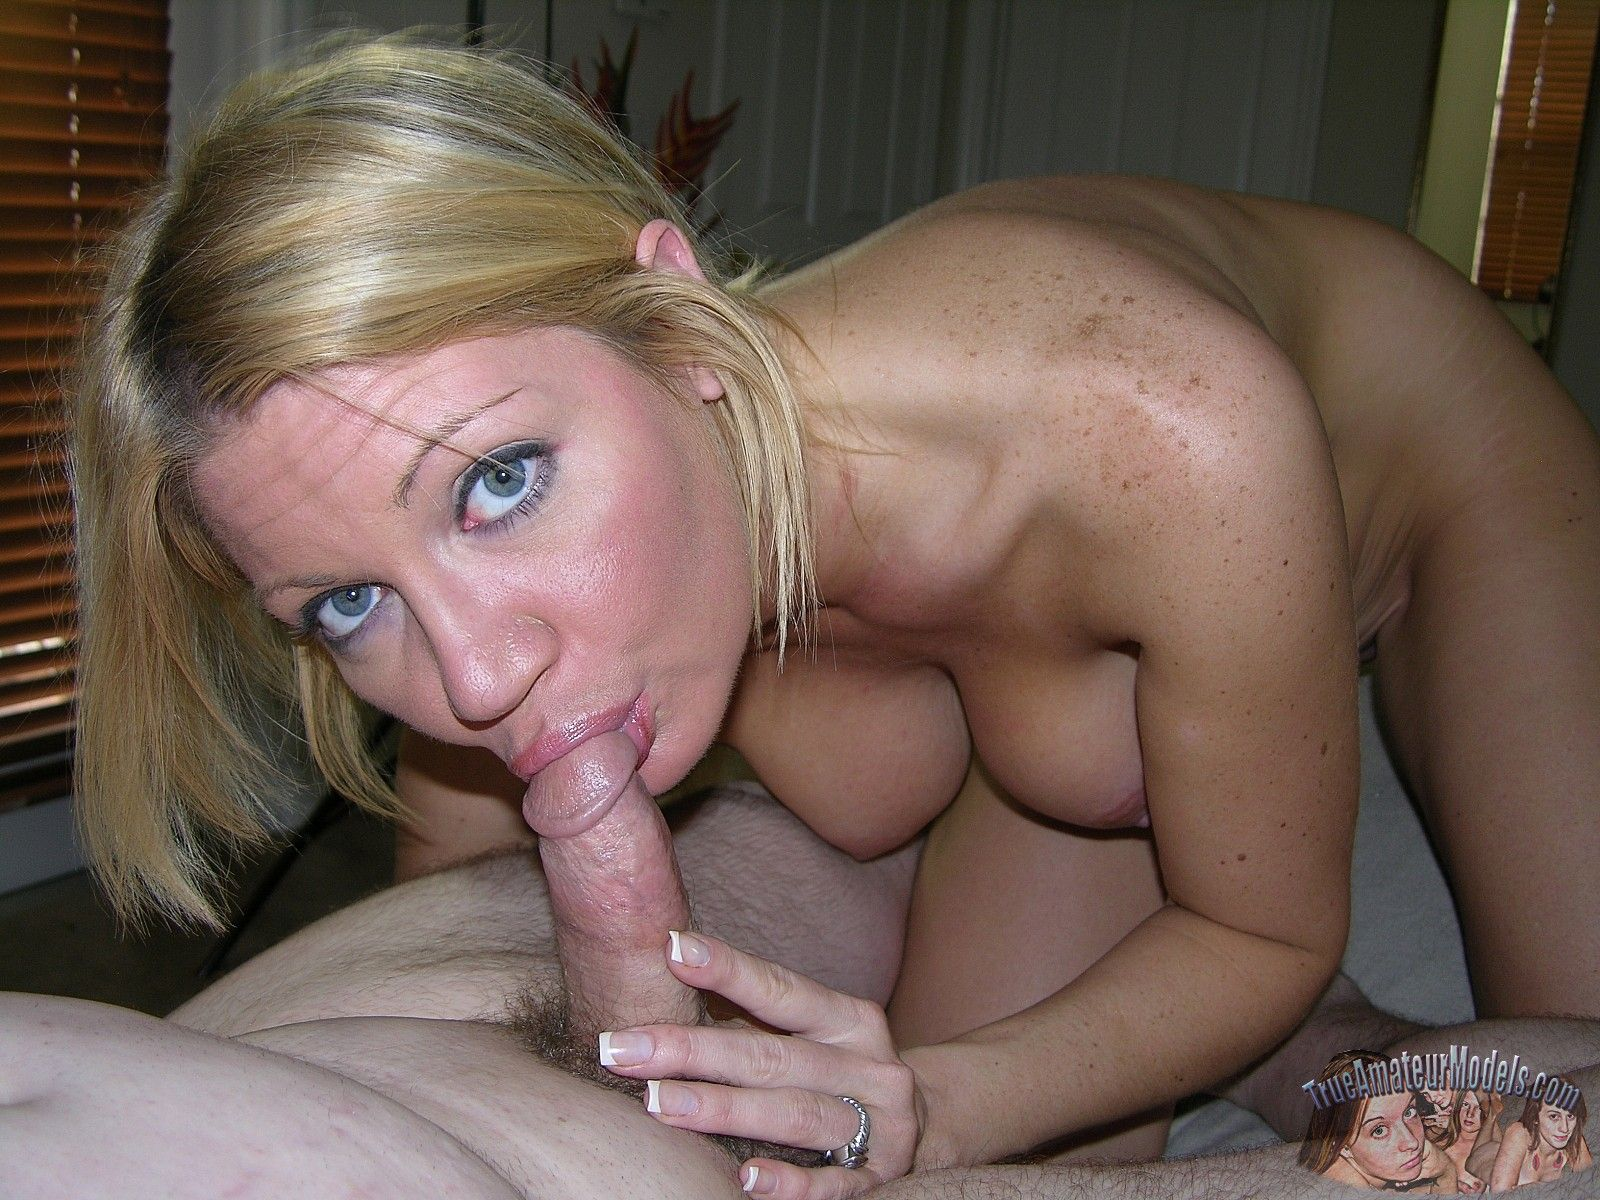 Thought cock nude fuck and handjob black interesting. You